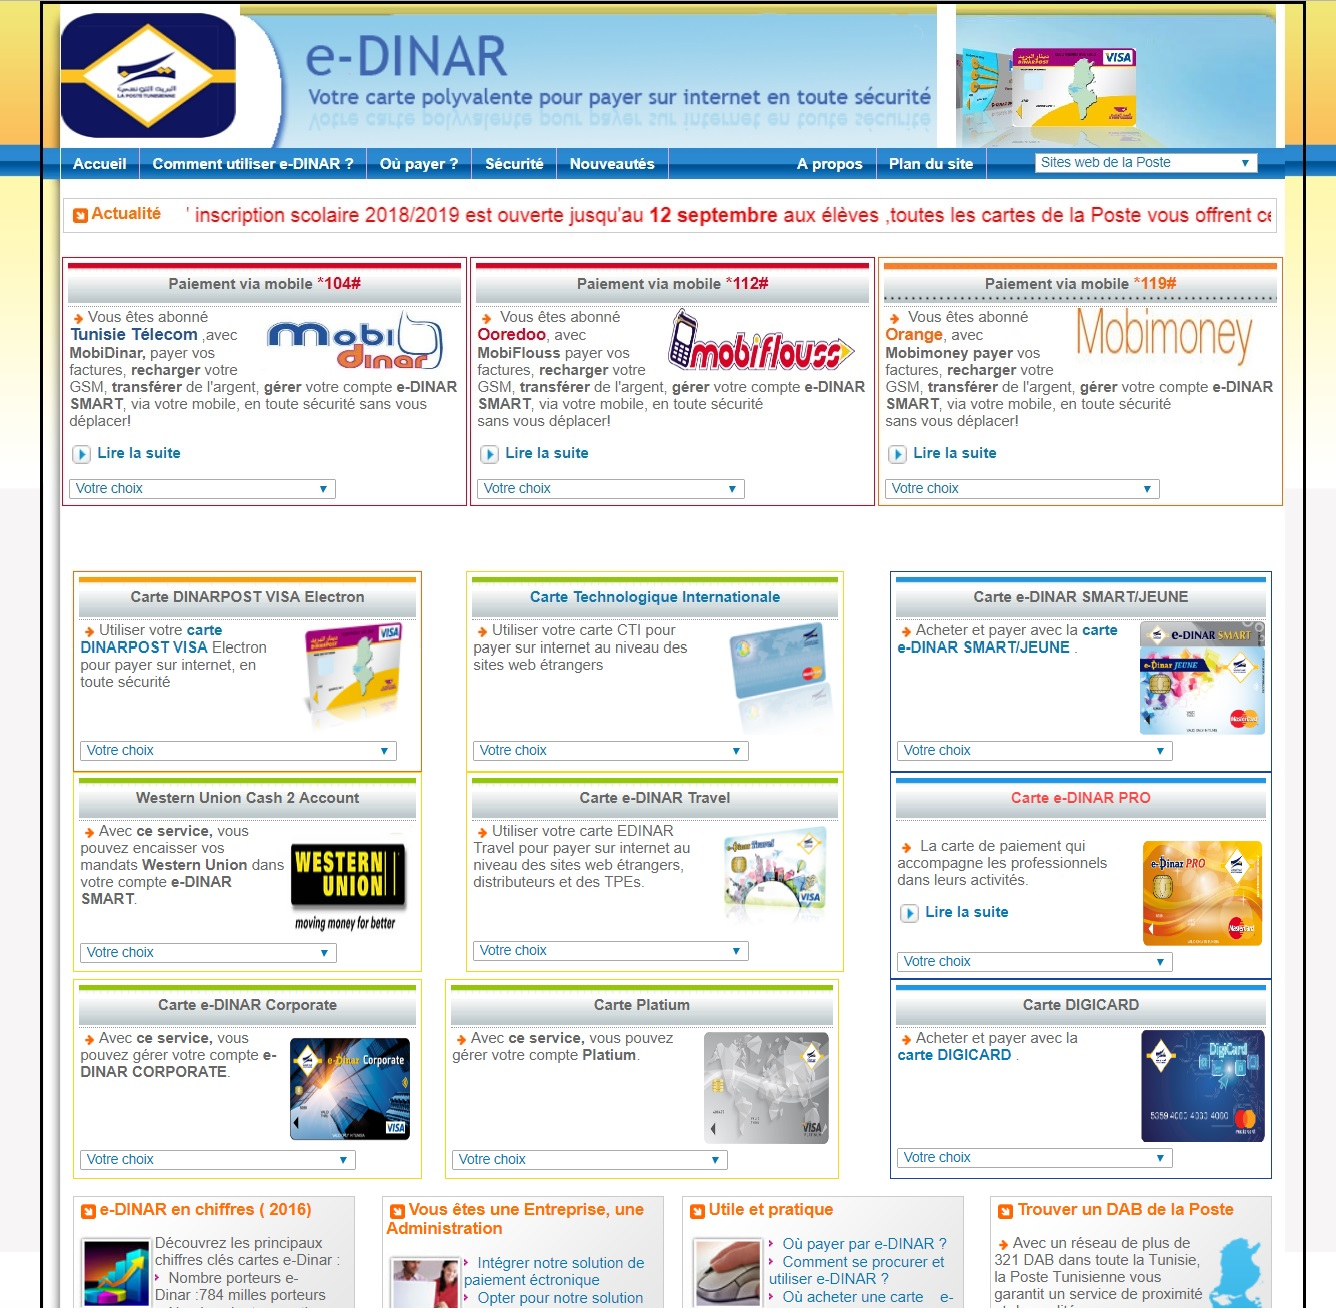 e-dinar.poste.tn Dinar Electronique La Poste Tunisie edinar smart universel Digicard jeune